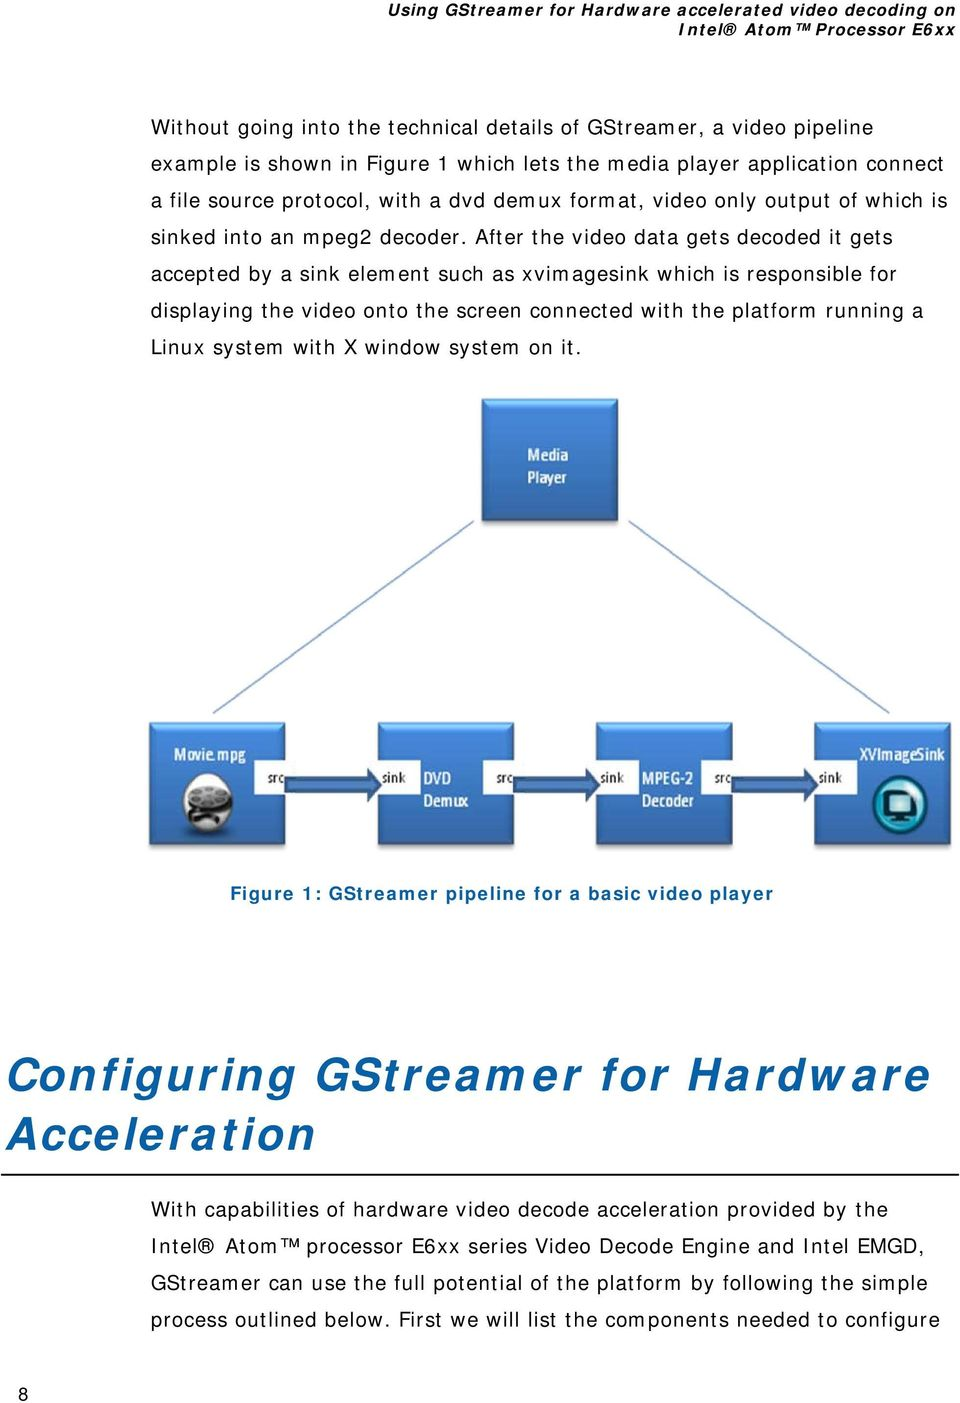 Using GStreamer for hardware accelerated video decoding on